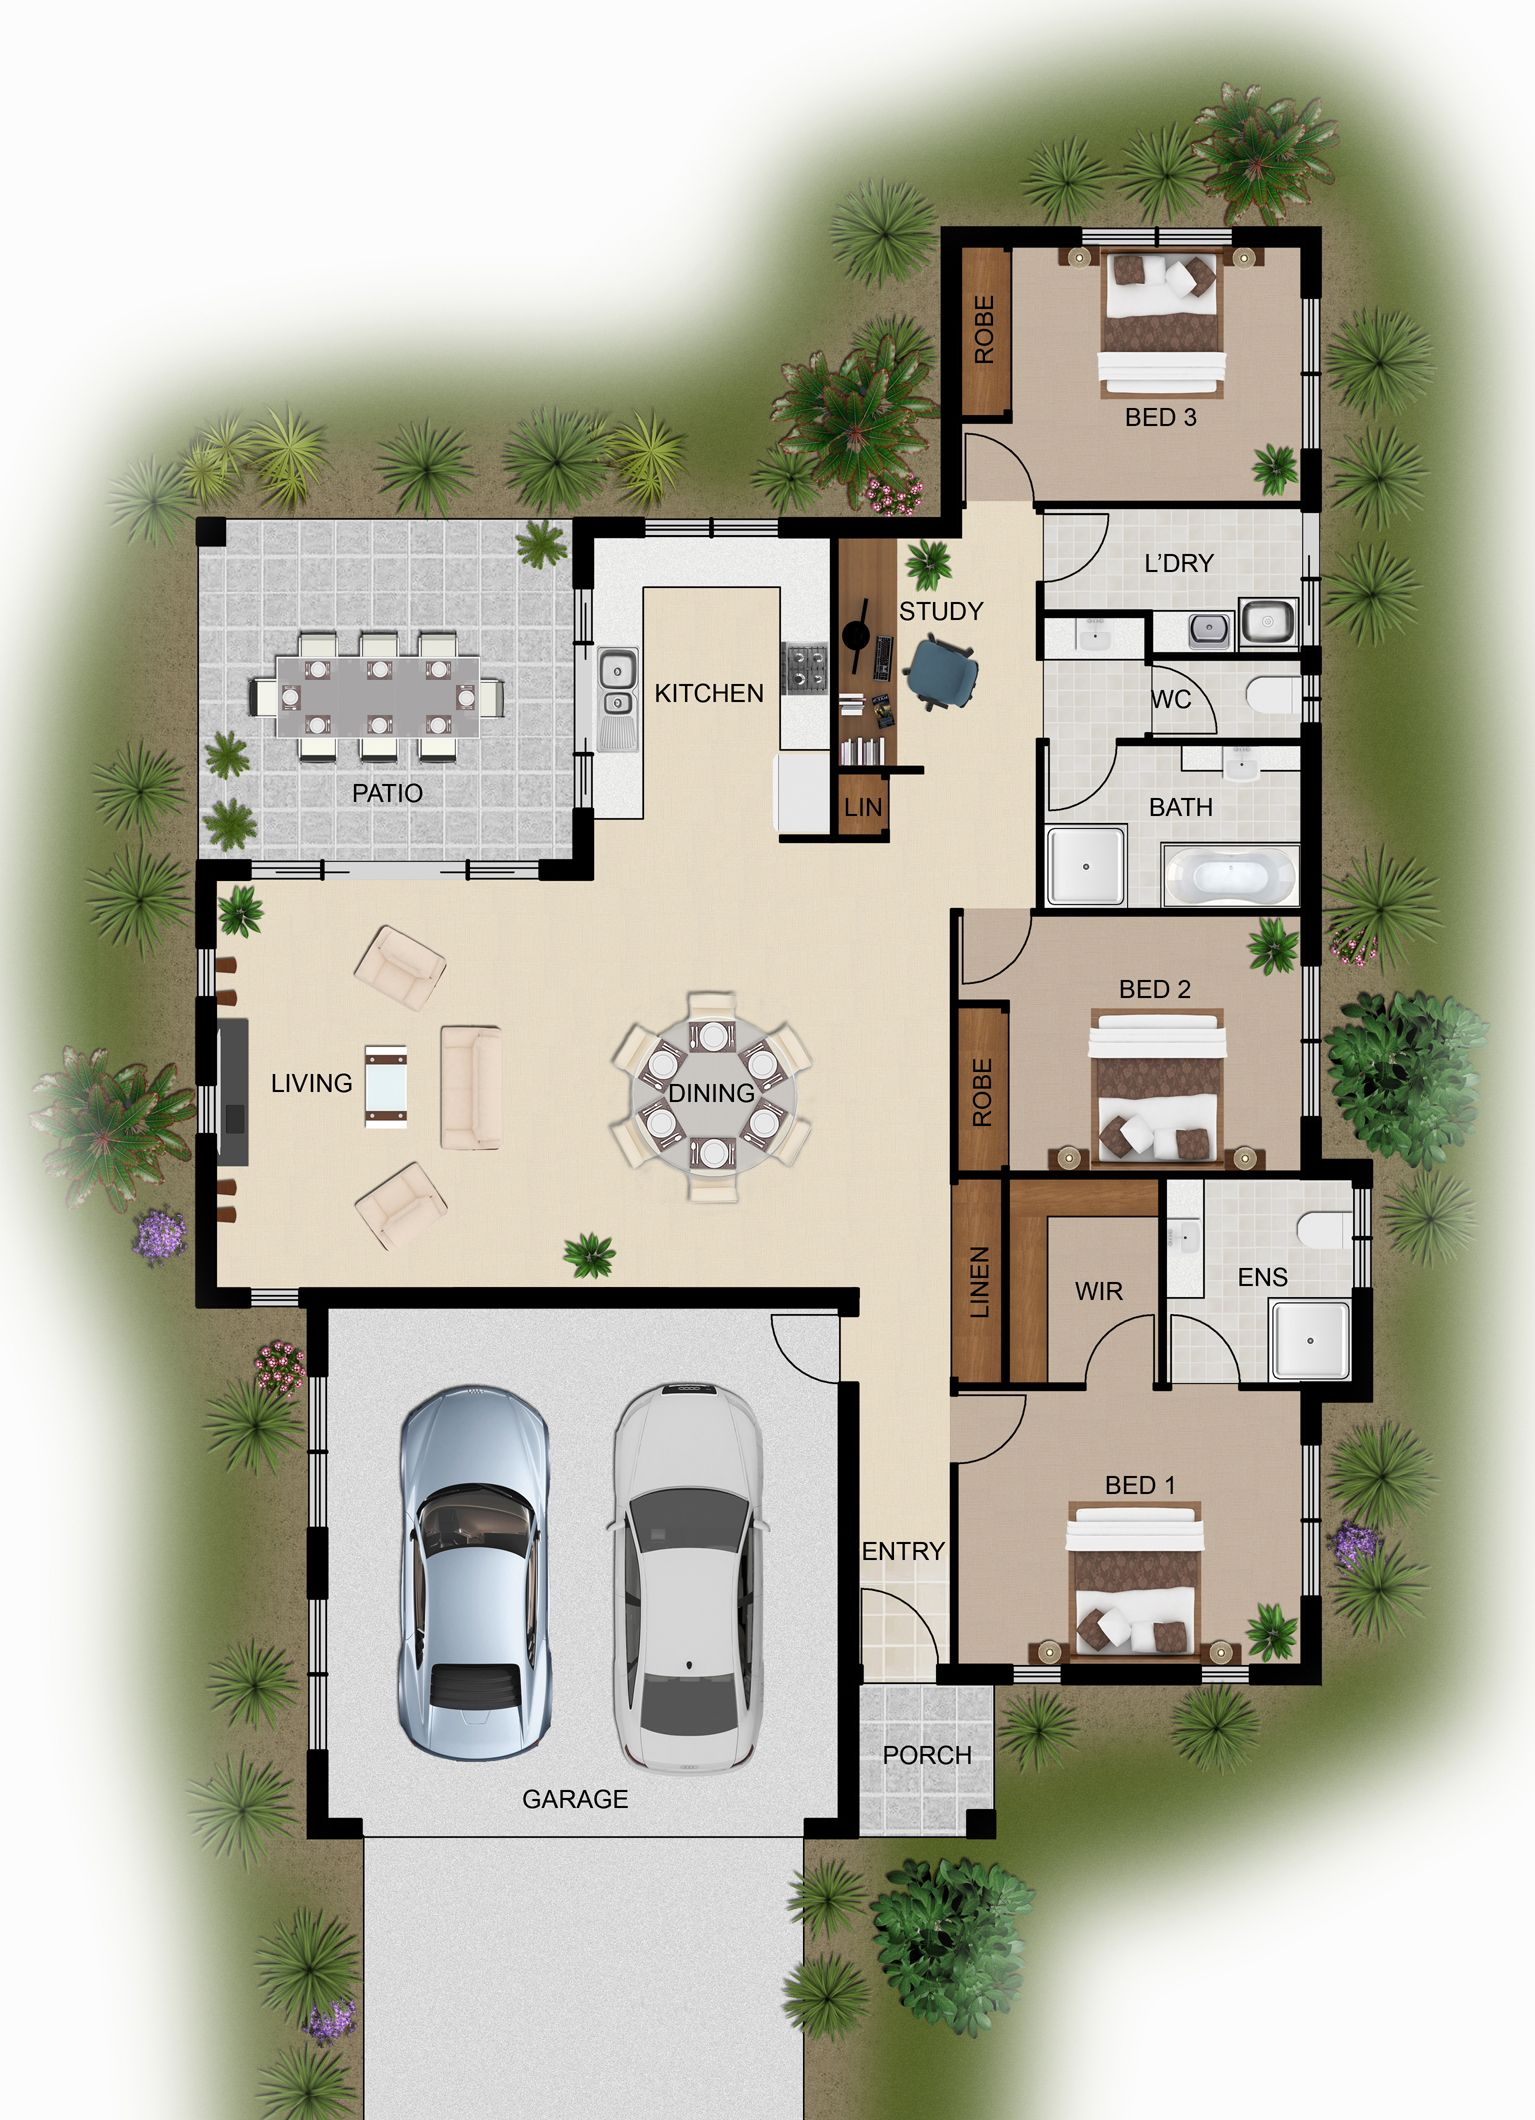 Australia S Leading 3d Architectural Visualisation And Rendering Company Specialising In 3d Architectural Visuali Craftsman House Plans House Plans Floor Plans